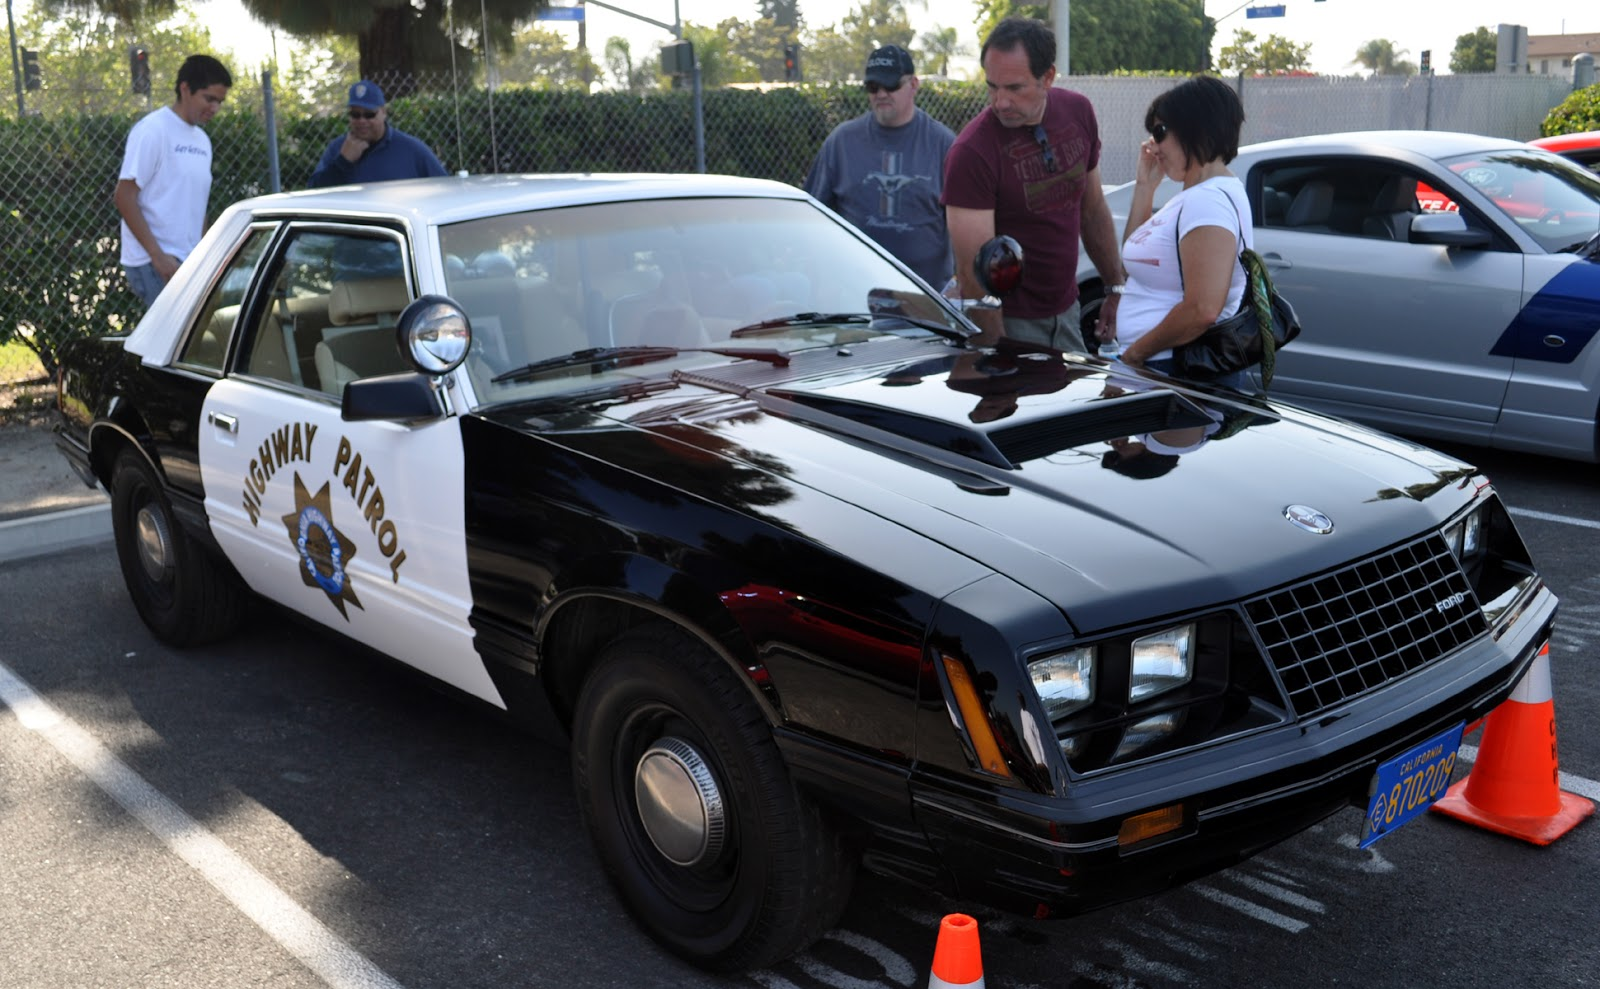 earlyt 1980's Mustang cop car from California Highway Patrol